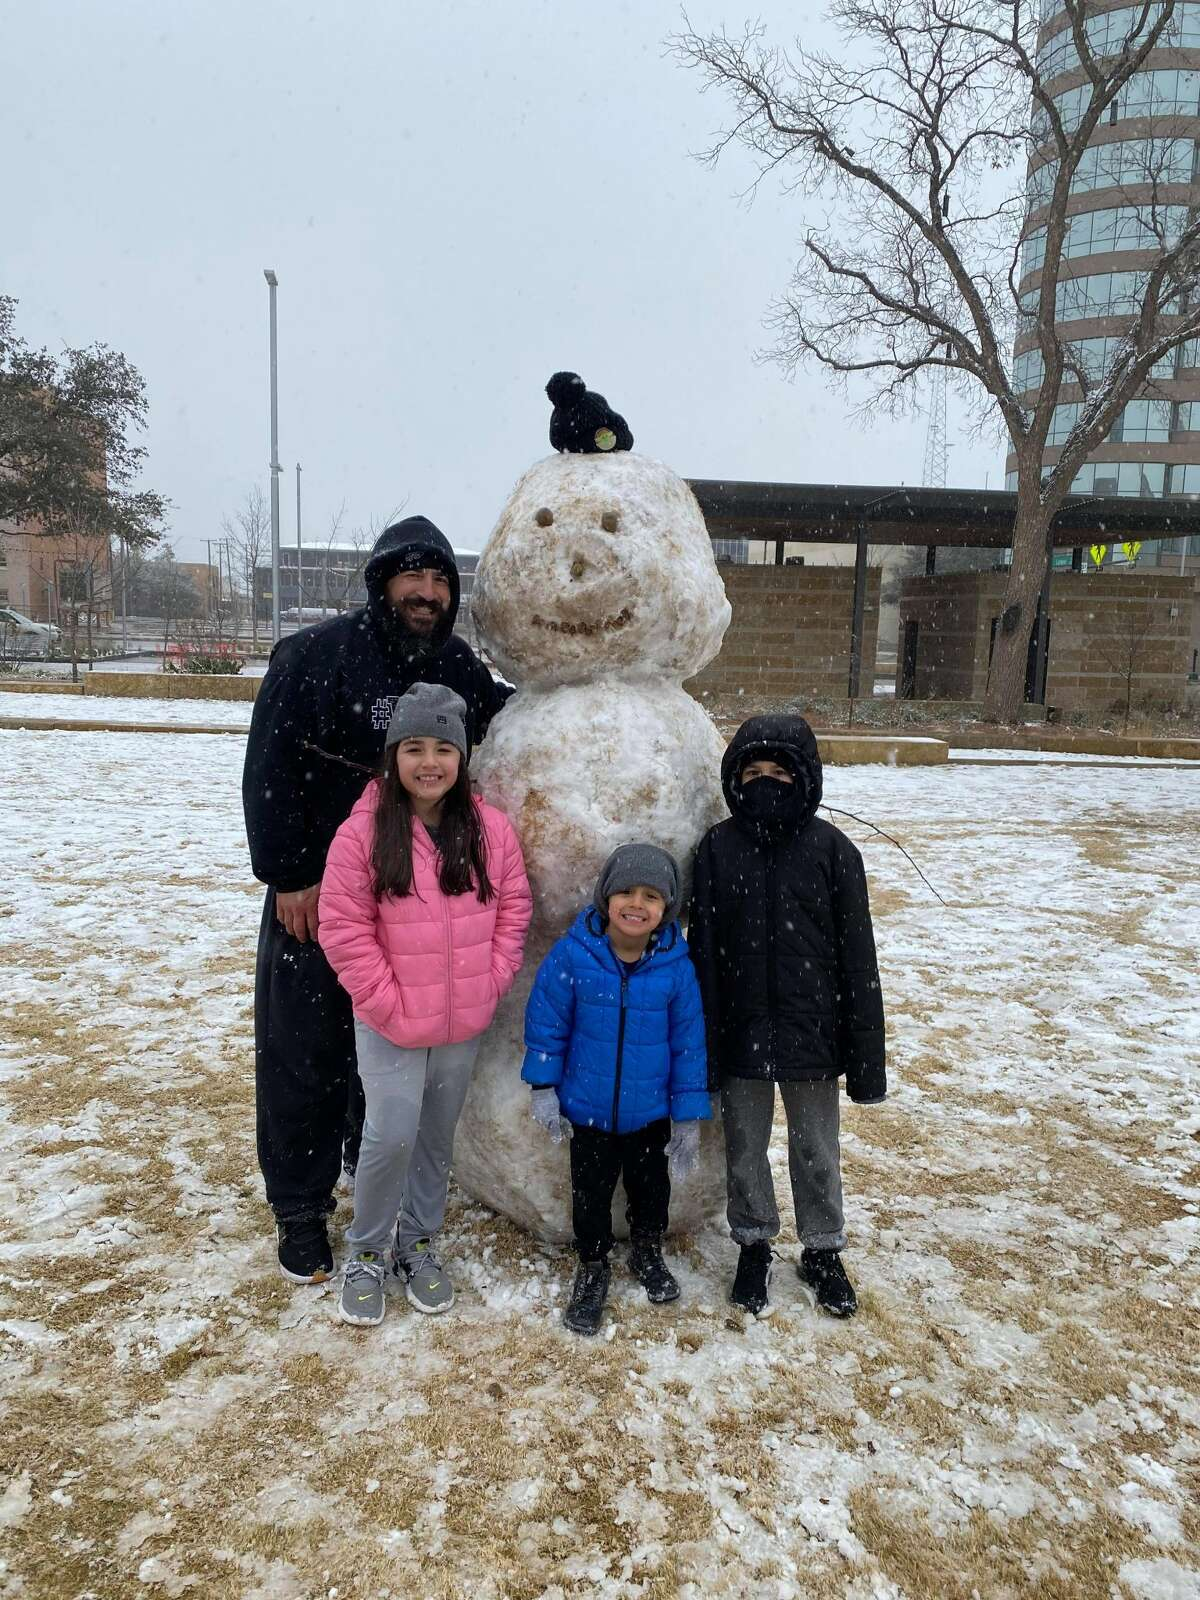 The Carrasco family enjoyed the snow that fell Wednesday, December 31, 2020, at Centennial Park in downtown Midland.